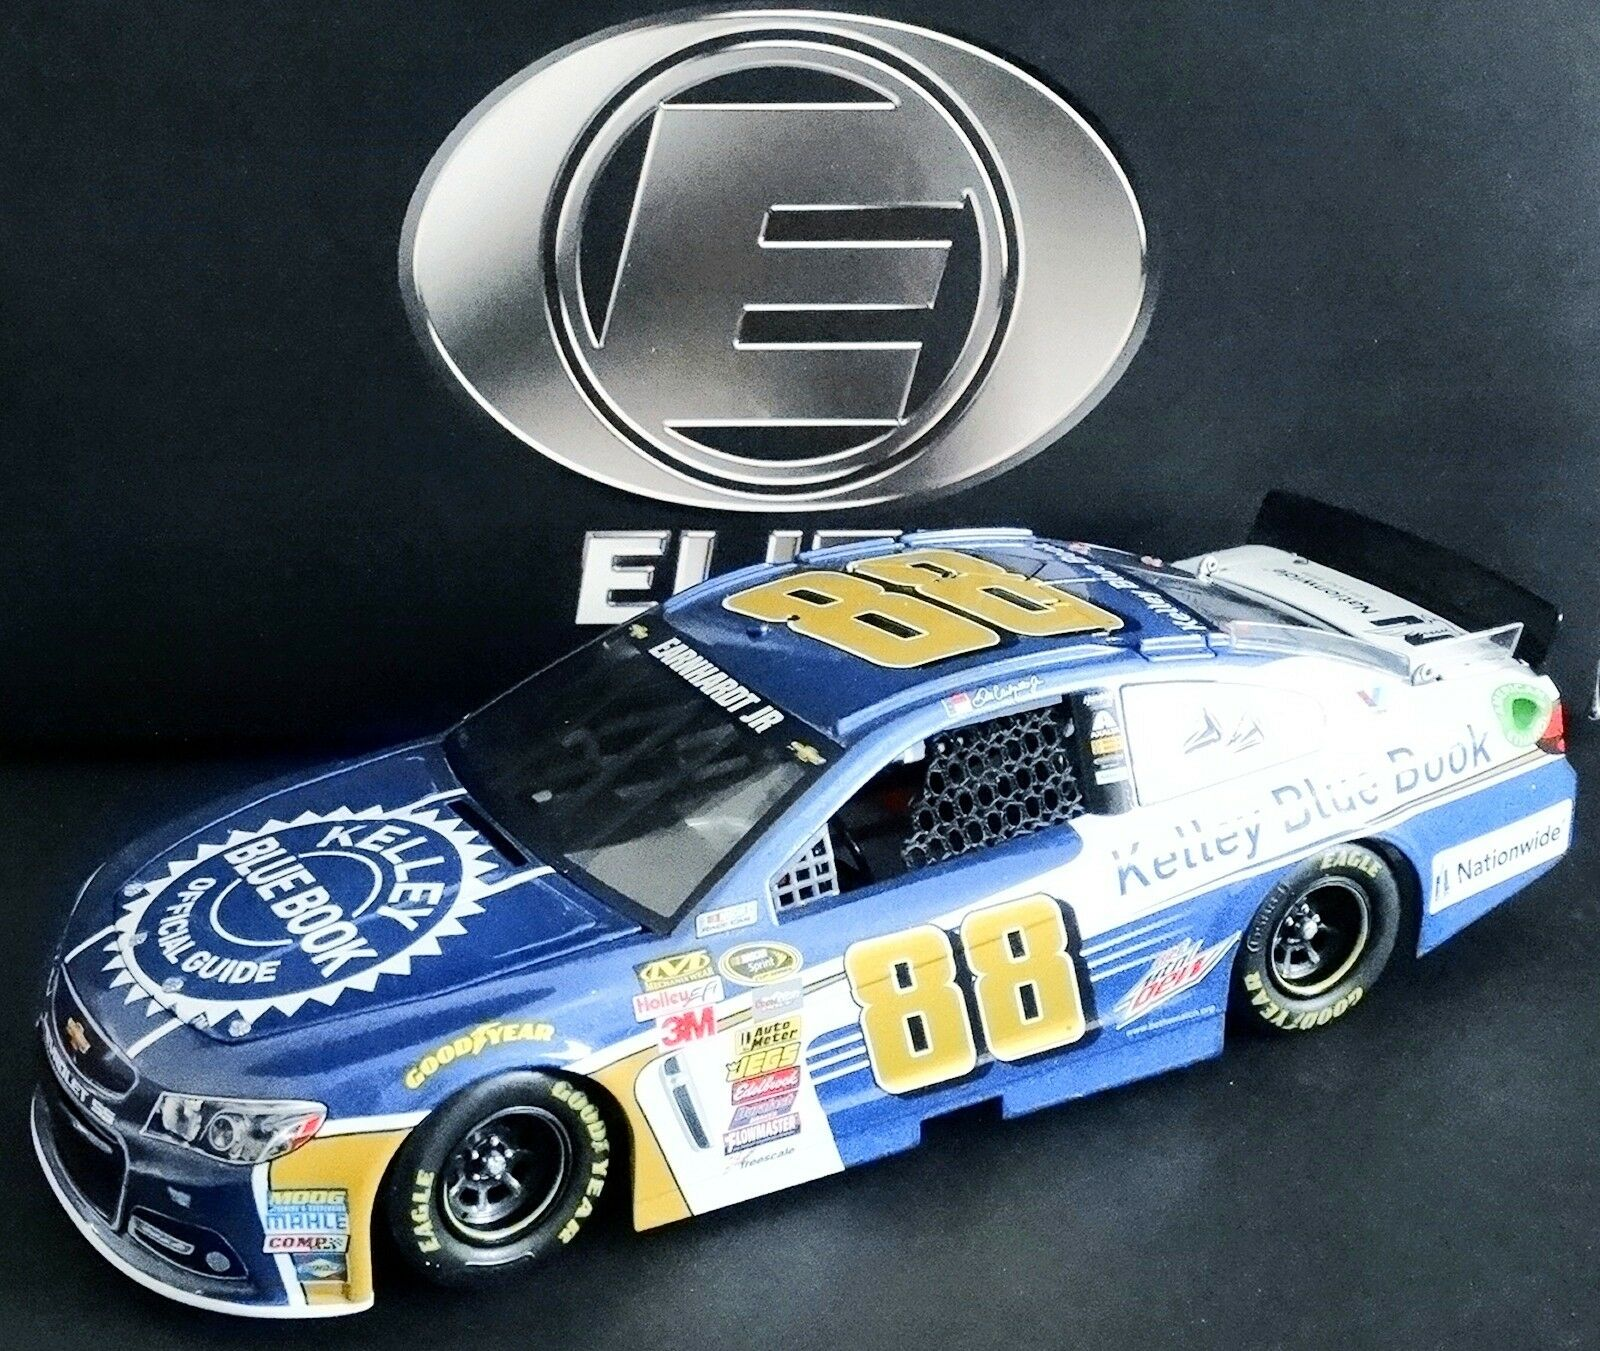 Dale Earnhardt, Jr. Kelley blu Book 1 24 Rcca Elite 2015 Chevy Ss 18 200